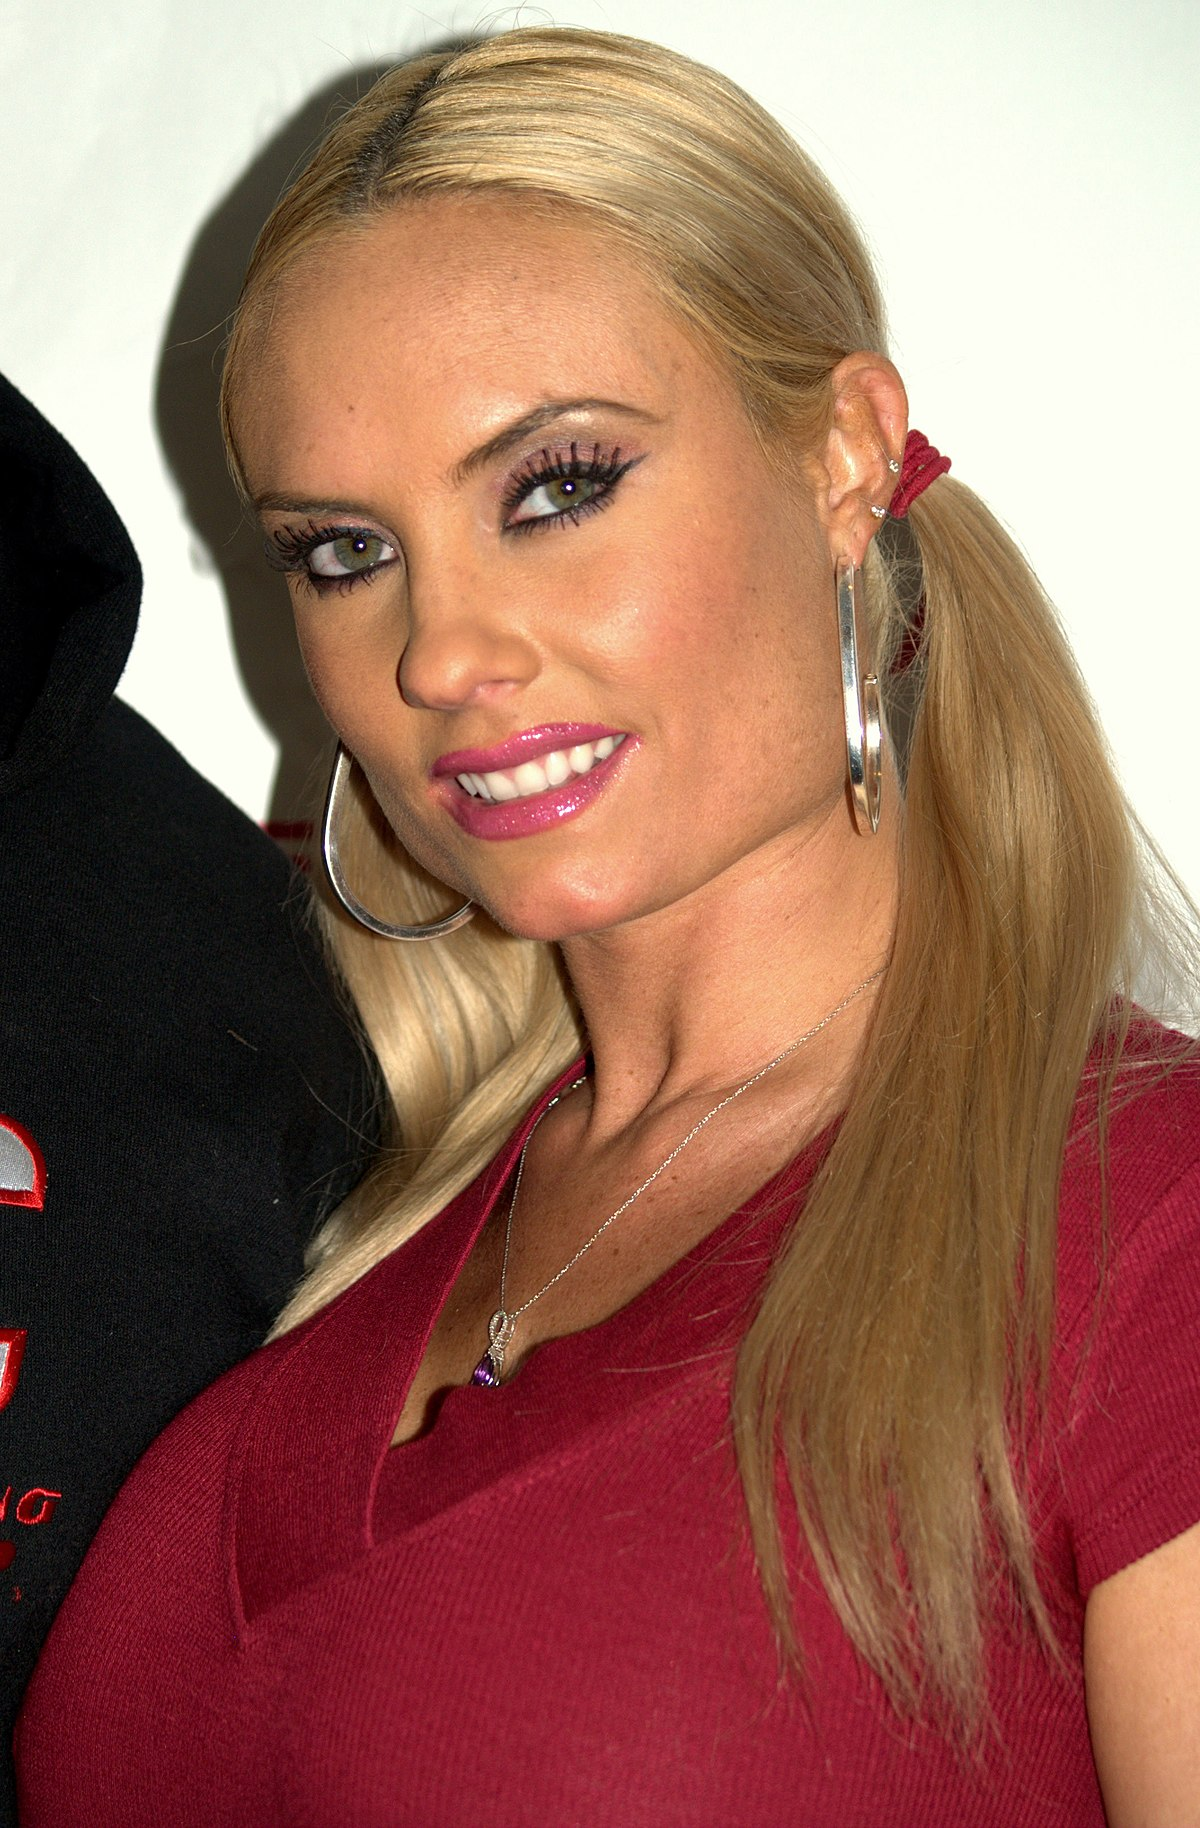 coco austin wikipedia. Black Bedroom Furniture Sets. Home Design Ideas